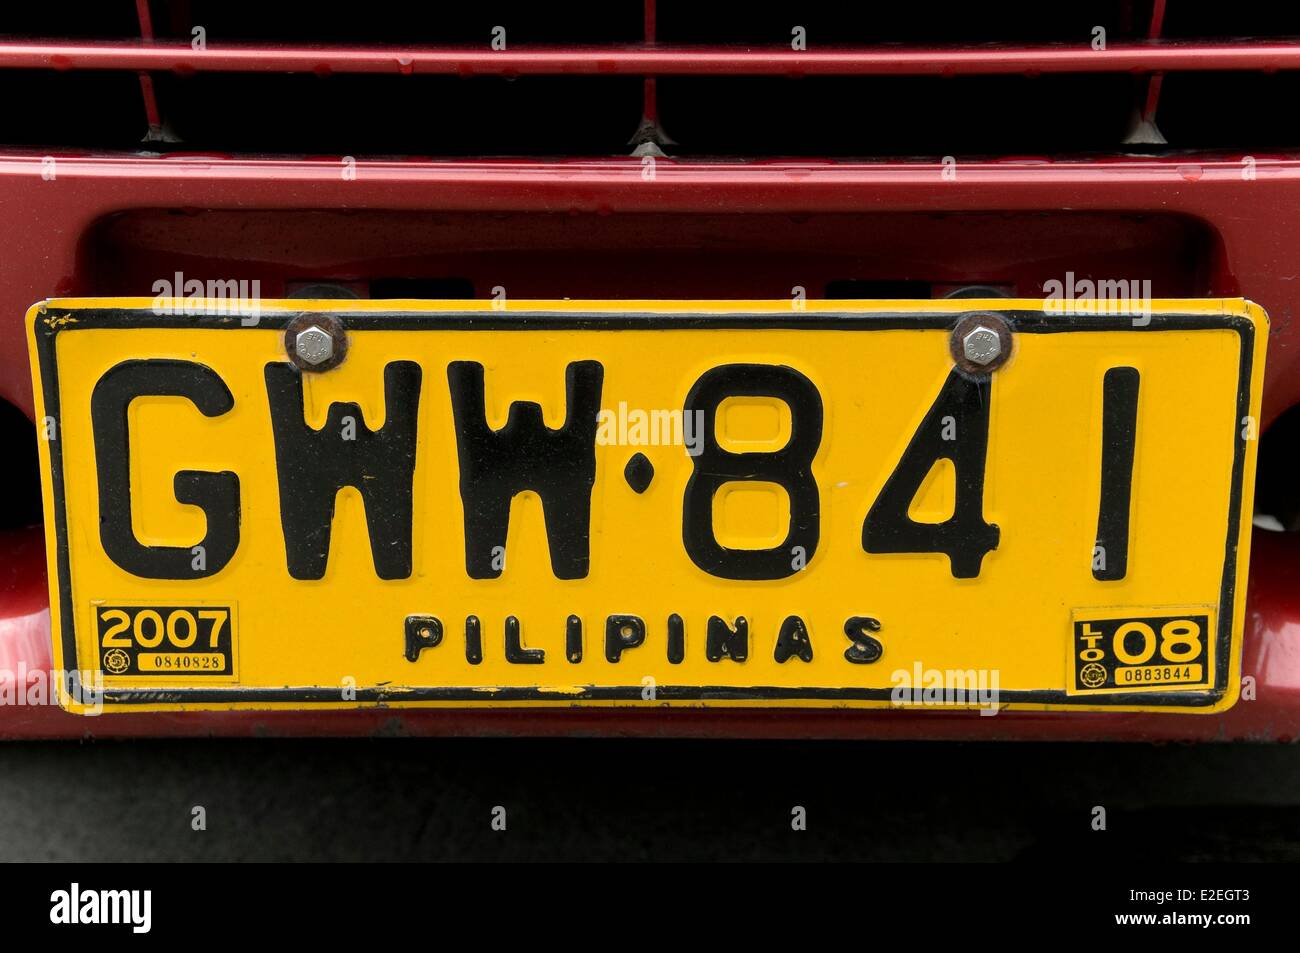 Philippines, Manila, local vehicle registration plate - Stock Image